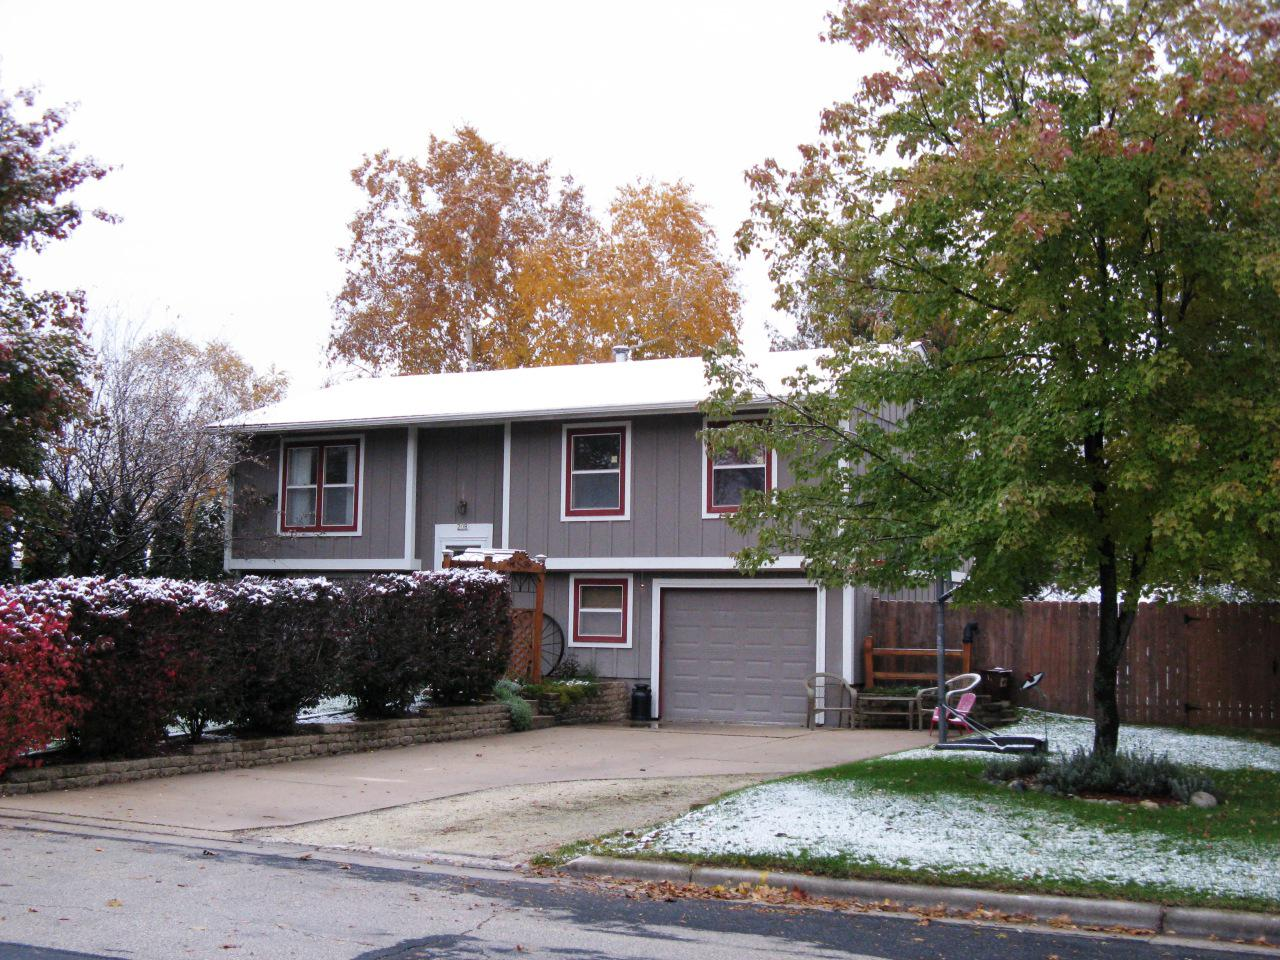 Be in your new home for the holidays! You will love the open concept living and dining room with newer laminate floor and access to deck, patio and spacious fenced backyard. Convenient kitchen with laminate floor and all appliances included. Two nice-sized bedrooms with newer carpet and updated full bath, master has newer carpet and master bath with walk-in shower. Large family room on the lower level with full sized windows and newer carpet, an updated half bath, great office/mud room off the attached 1.5 car garage and a laundry room with utility sink. The fenced backyard has plenty of room for entertaining with patio, play area, garden and large new storage shed.